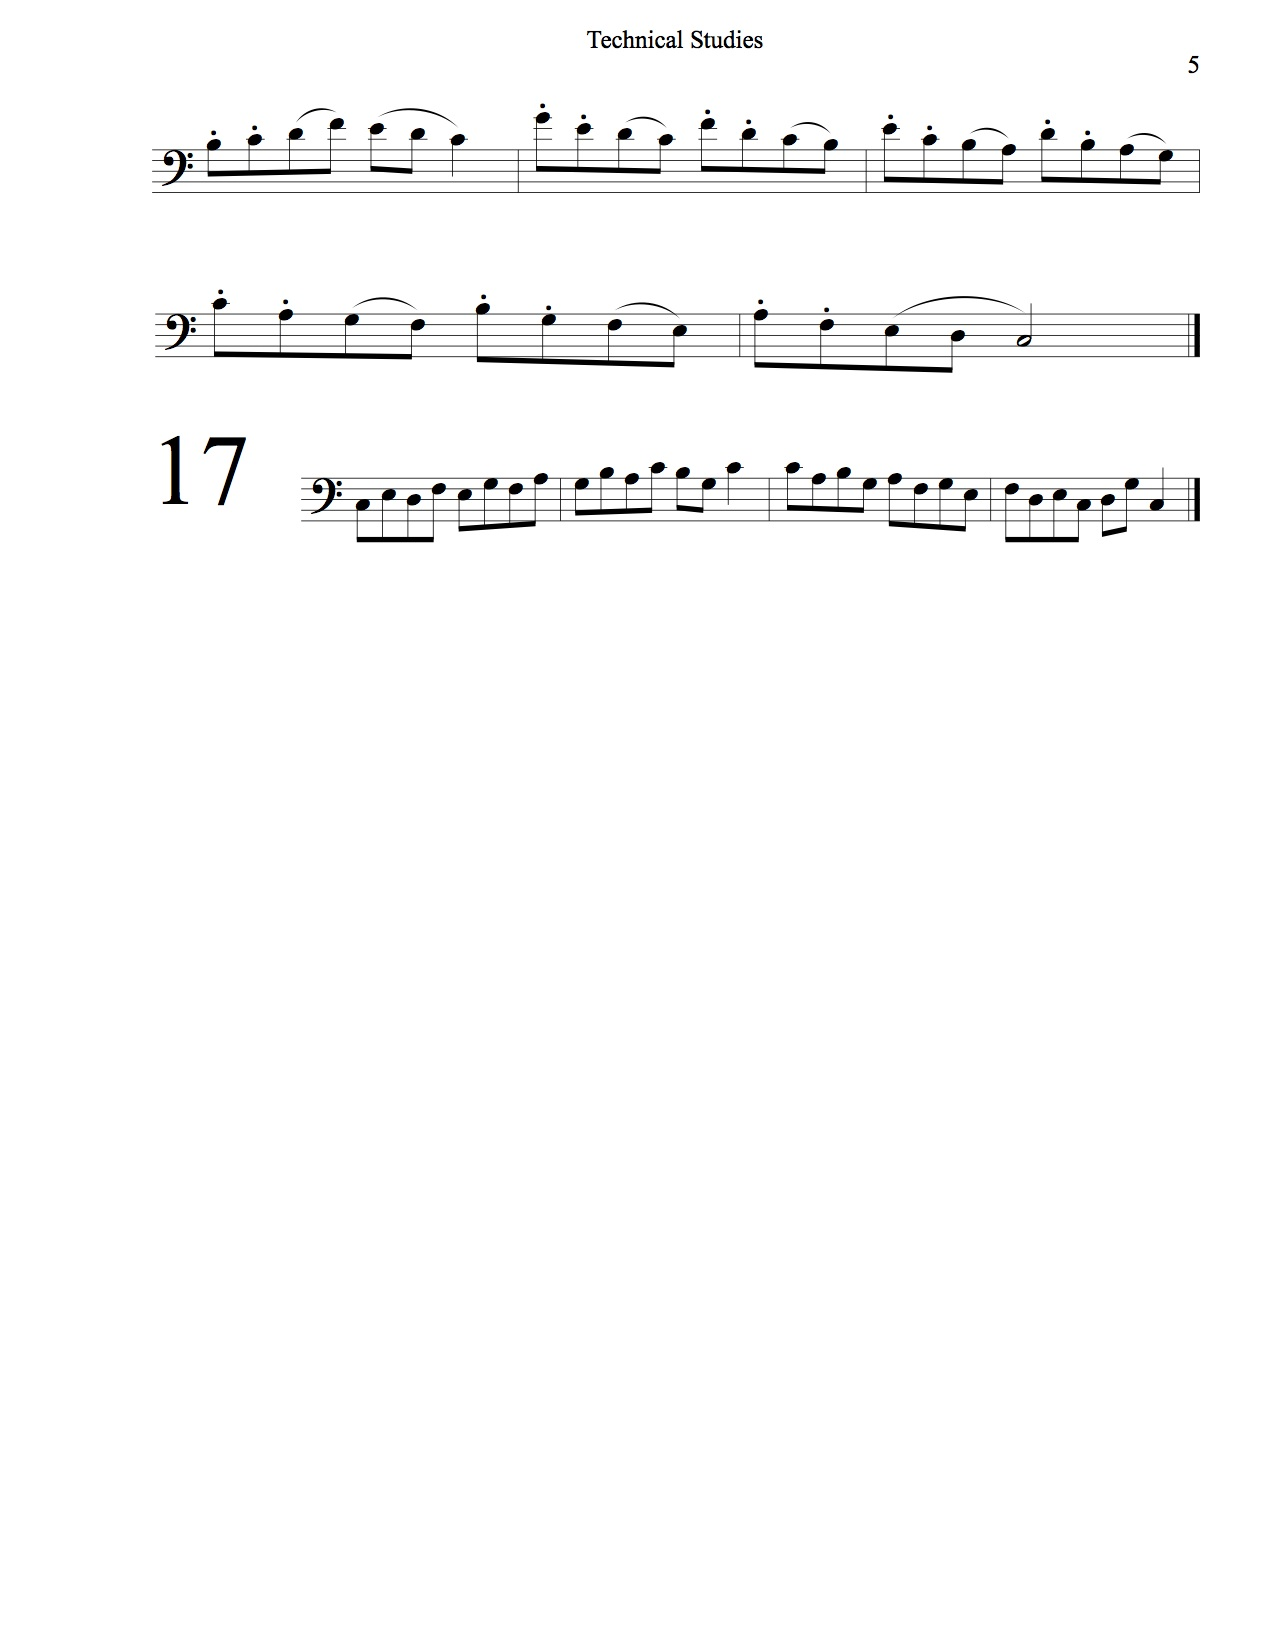 Technical Studies Bass Clef 5